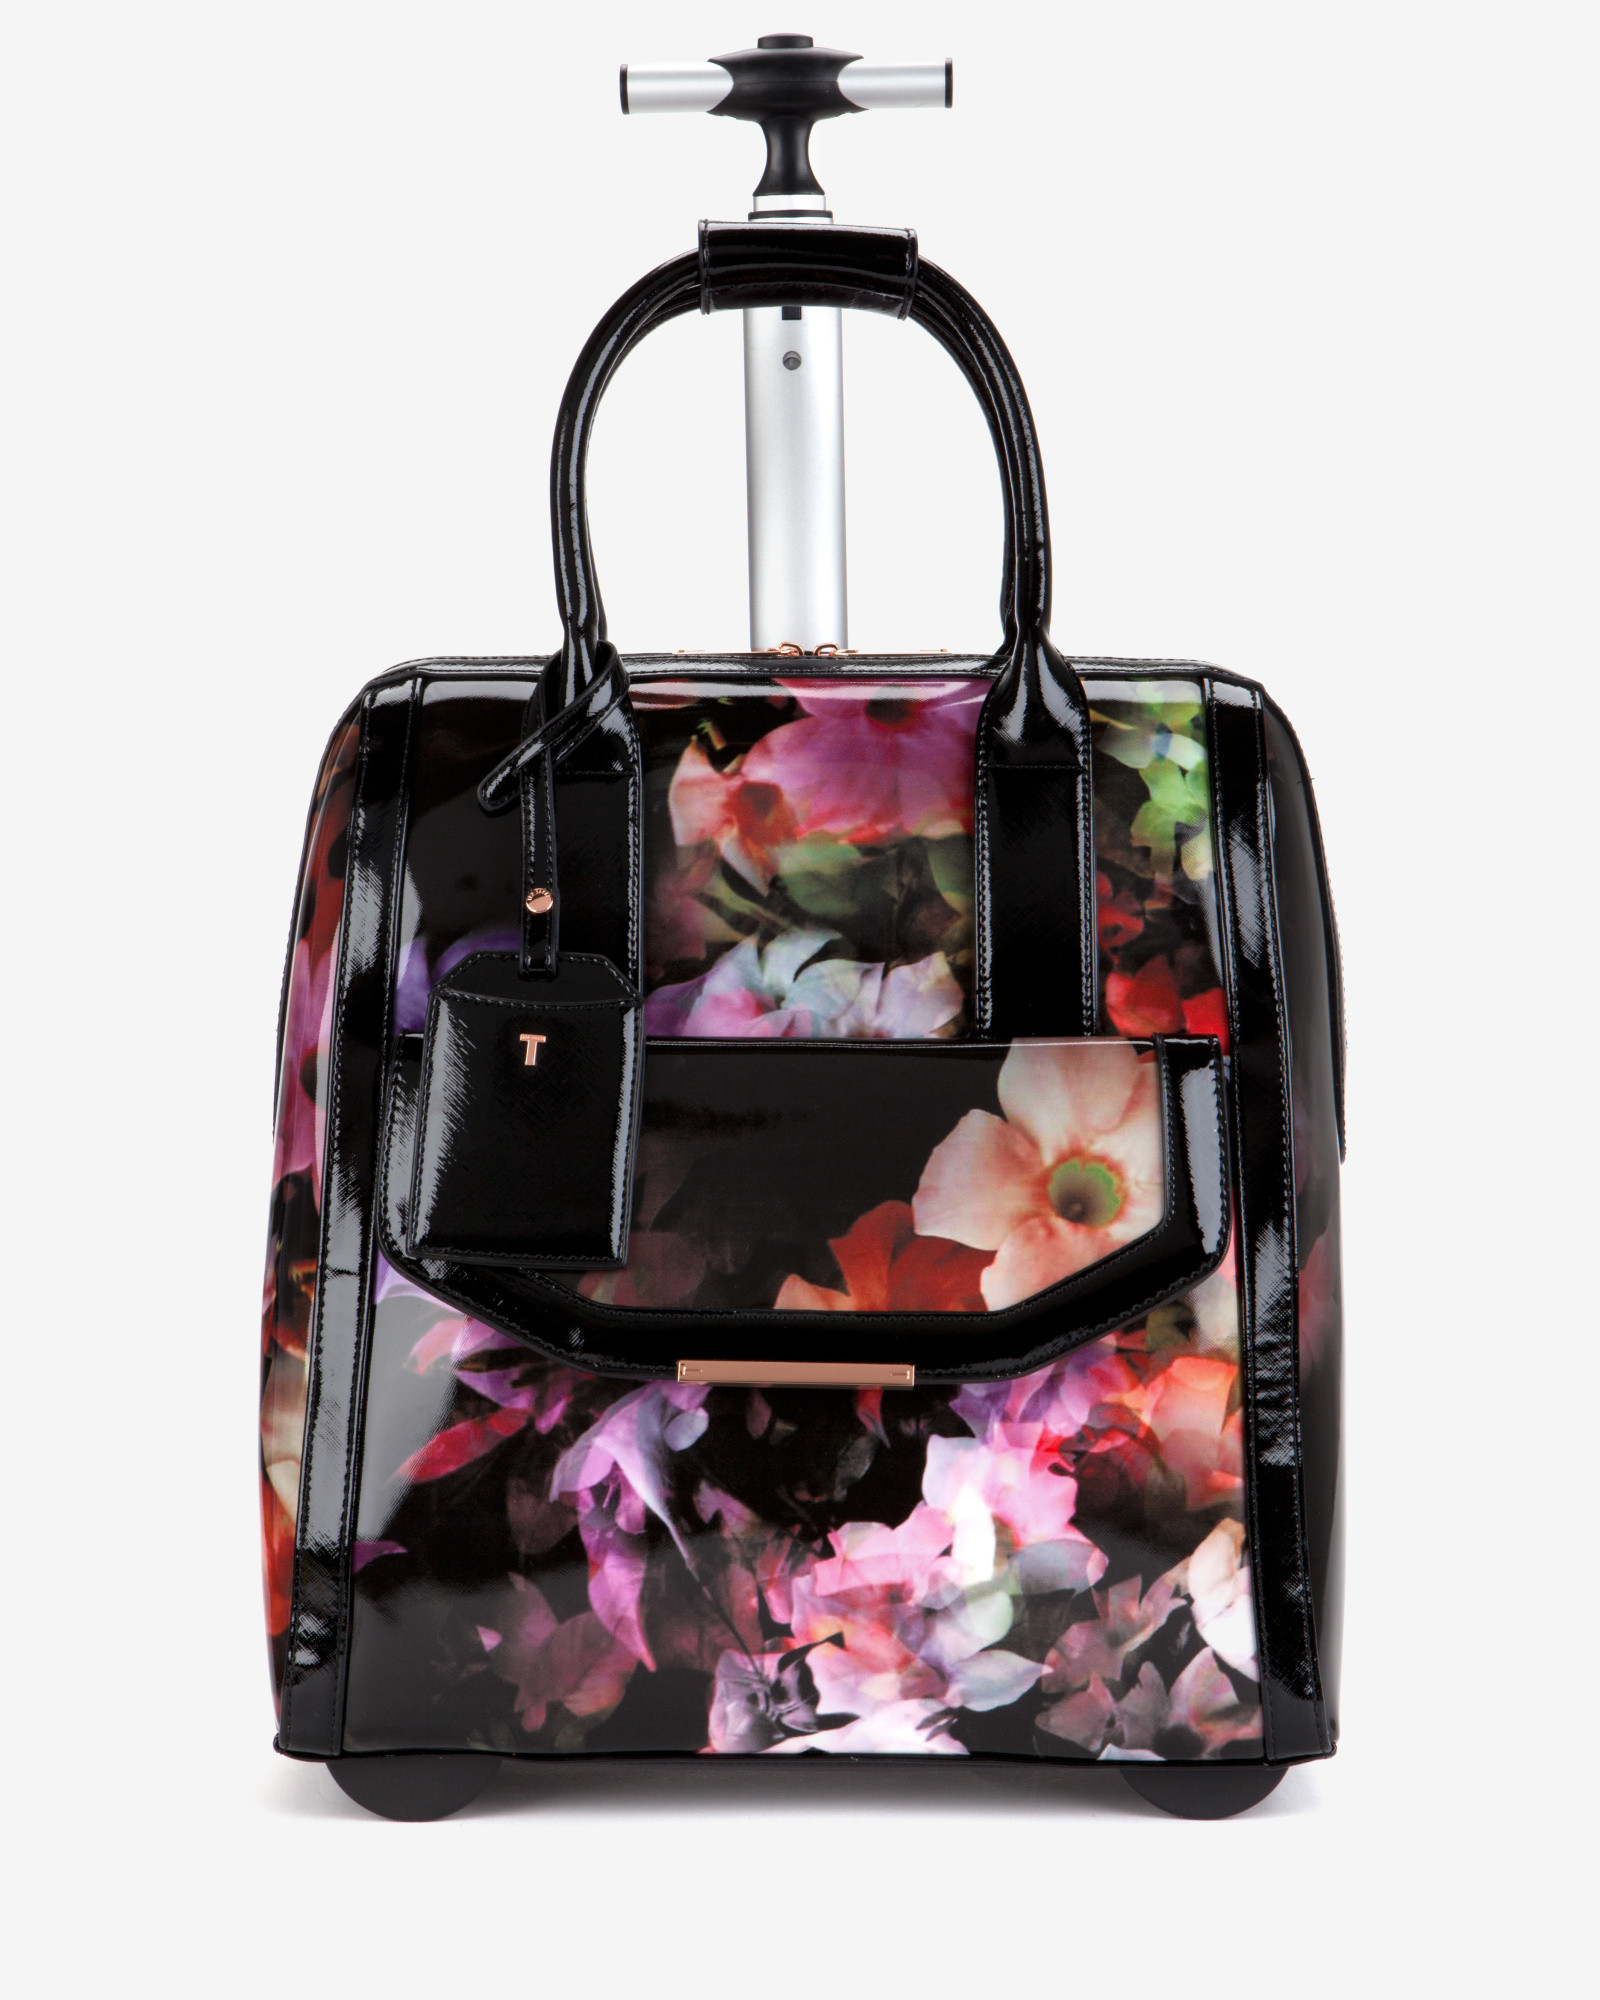 cbc75ba41 Ted Baker Cascading Floral Travel Bag in Black - Lyst